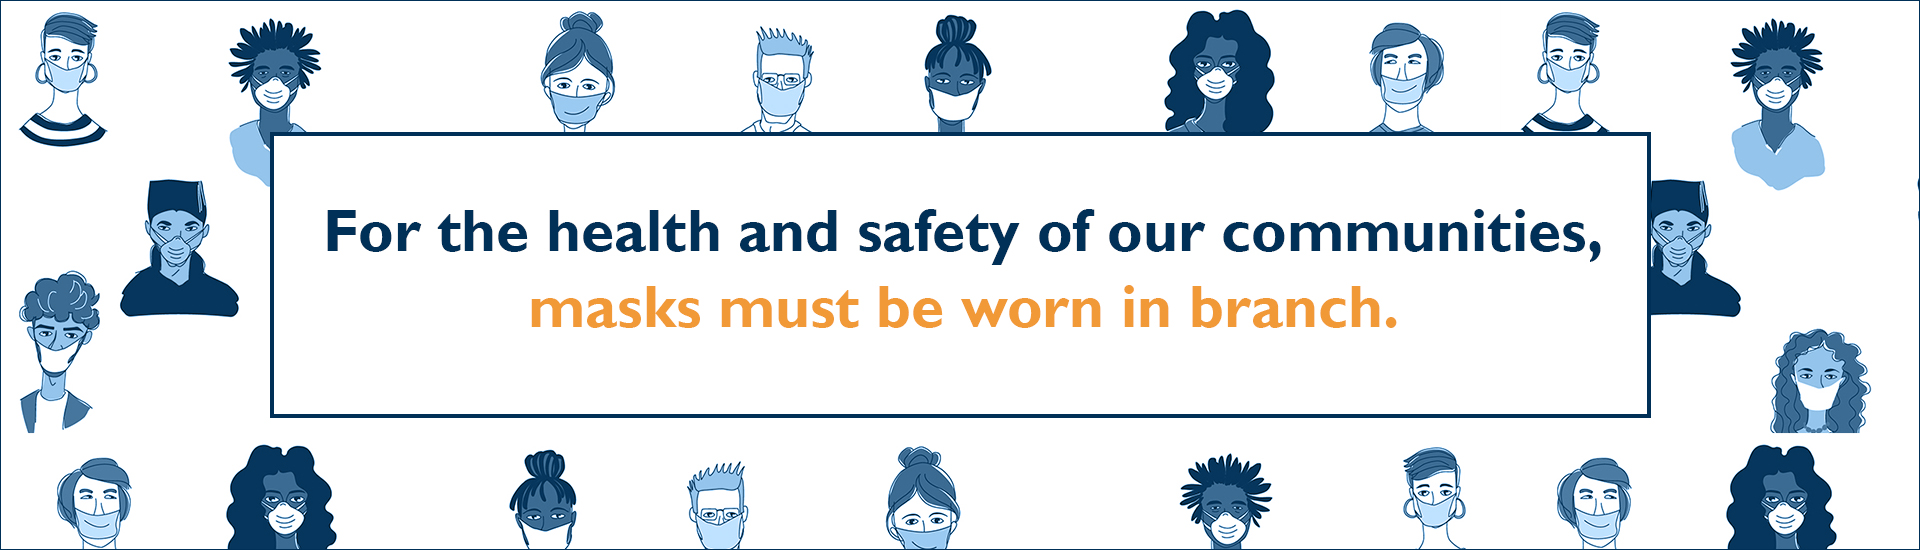 Text reads: For the health and safety of our communities, masks must be worn in branch.